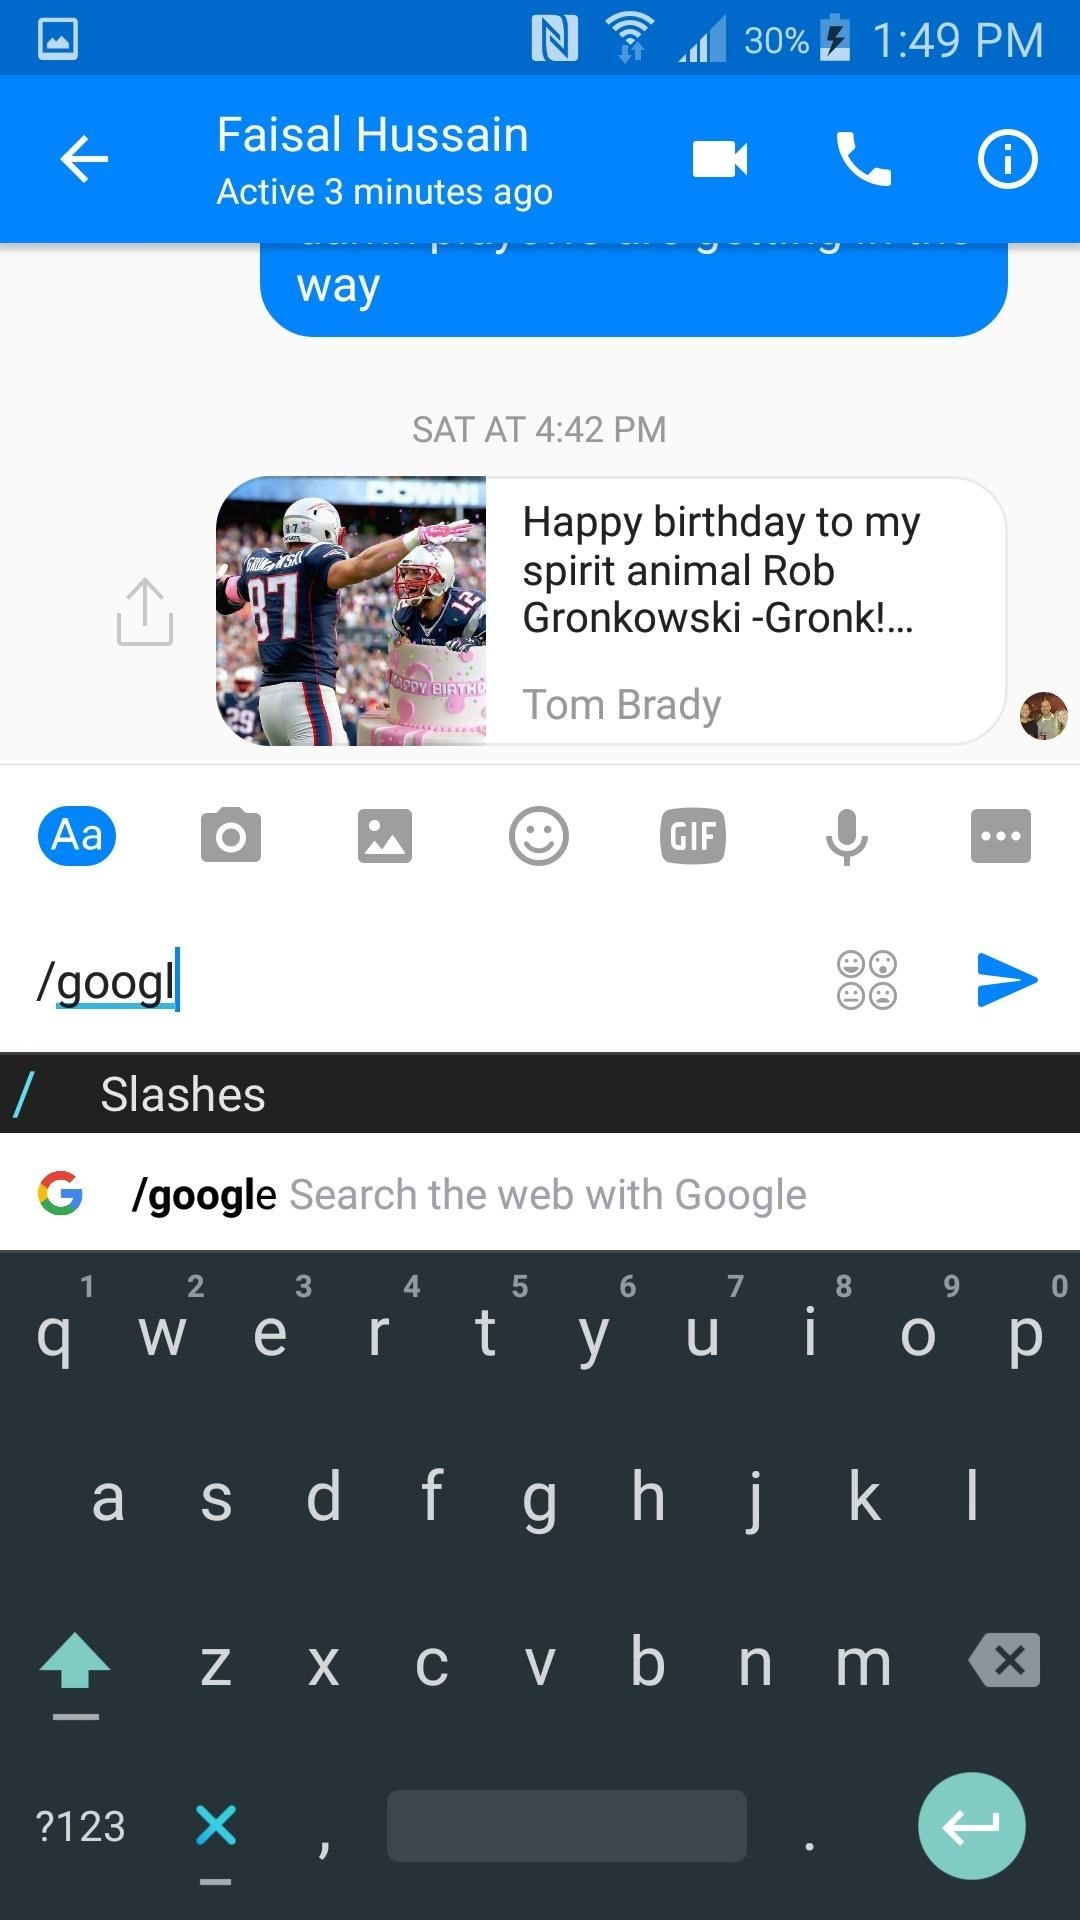 How to Get Google's Gboard Keyboard on Your Android